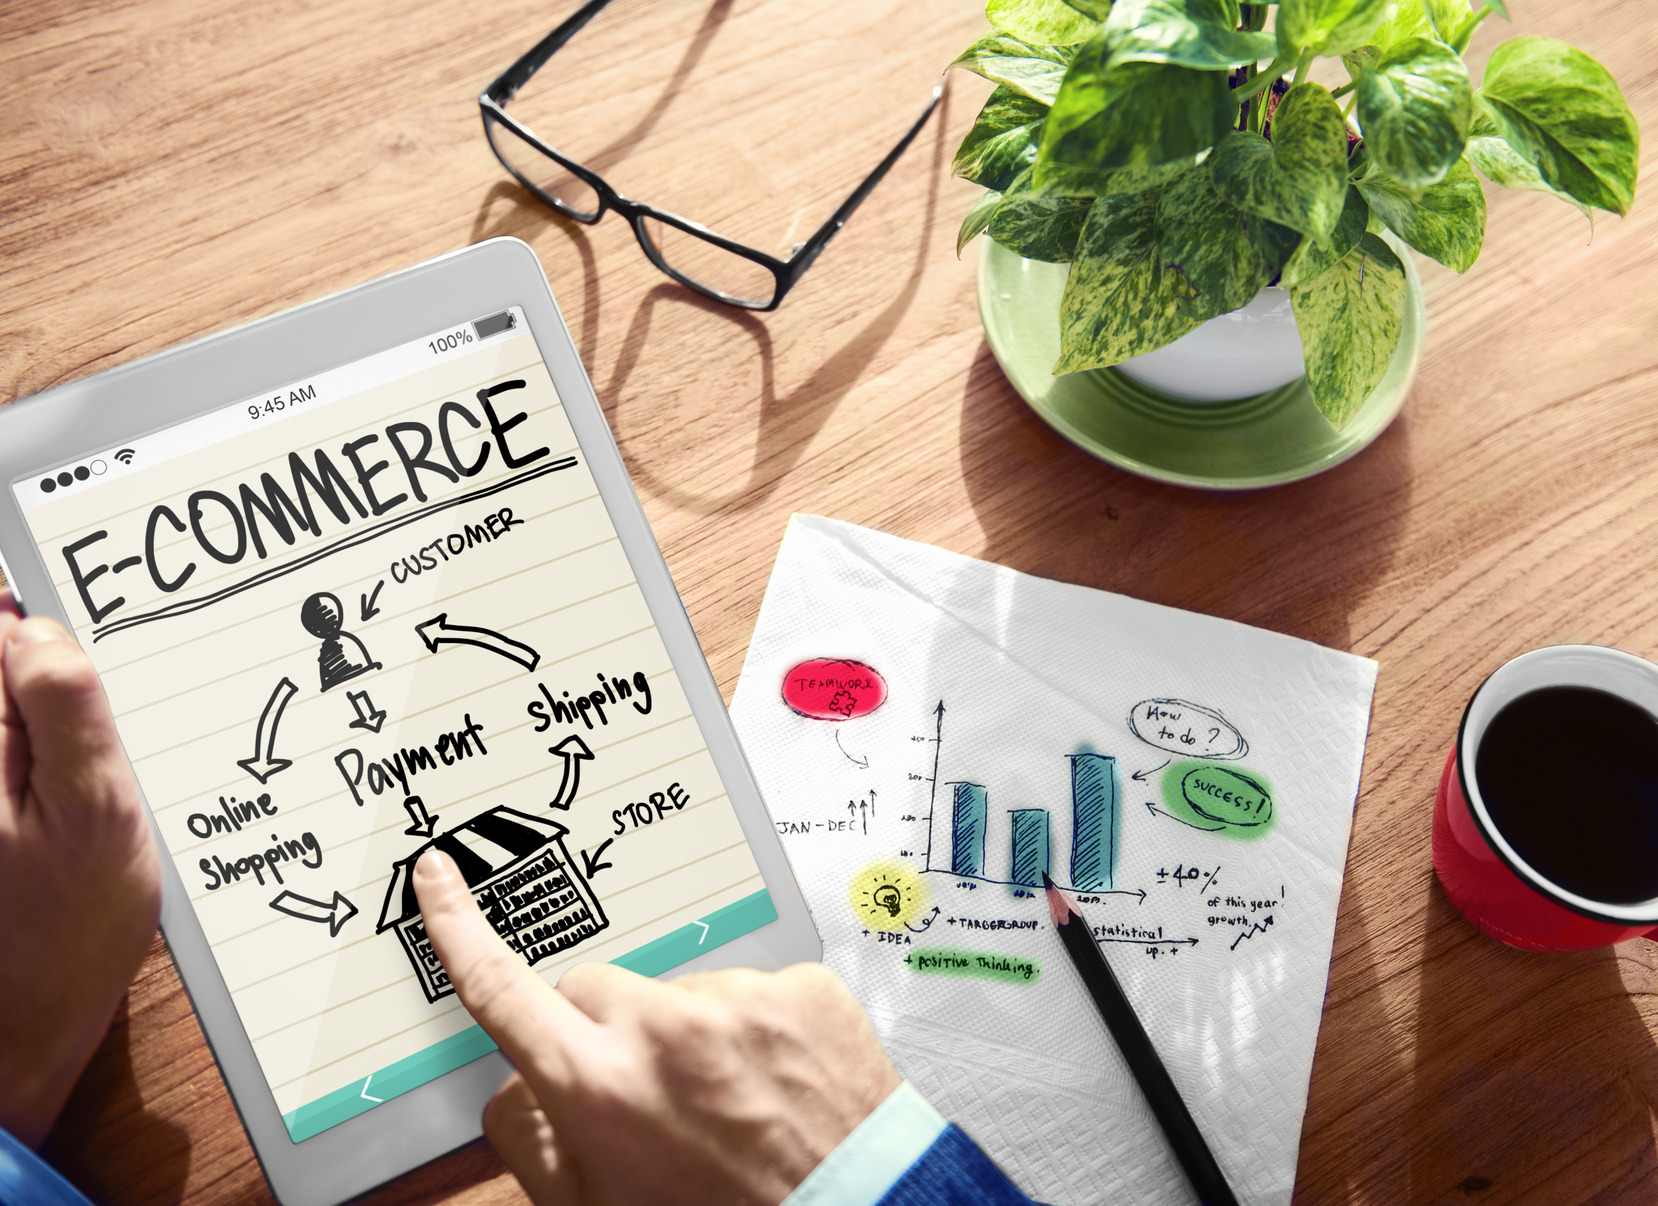 Ecommerce-Business How To Start an E-Commerce Business Without a Large Investment